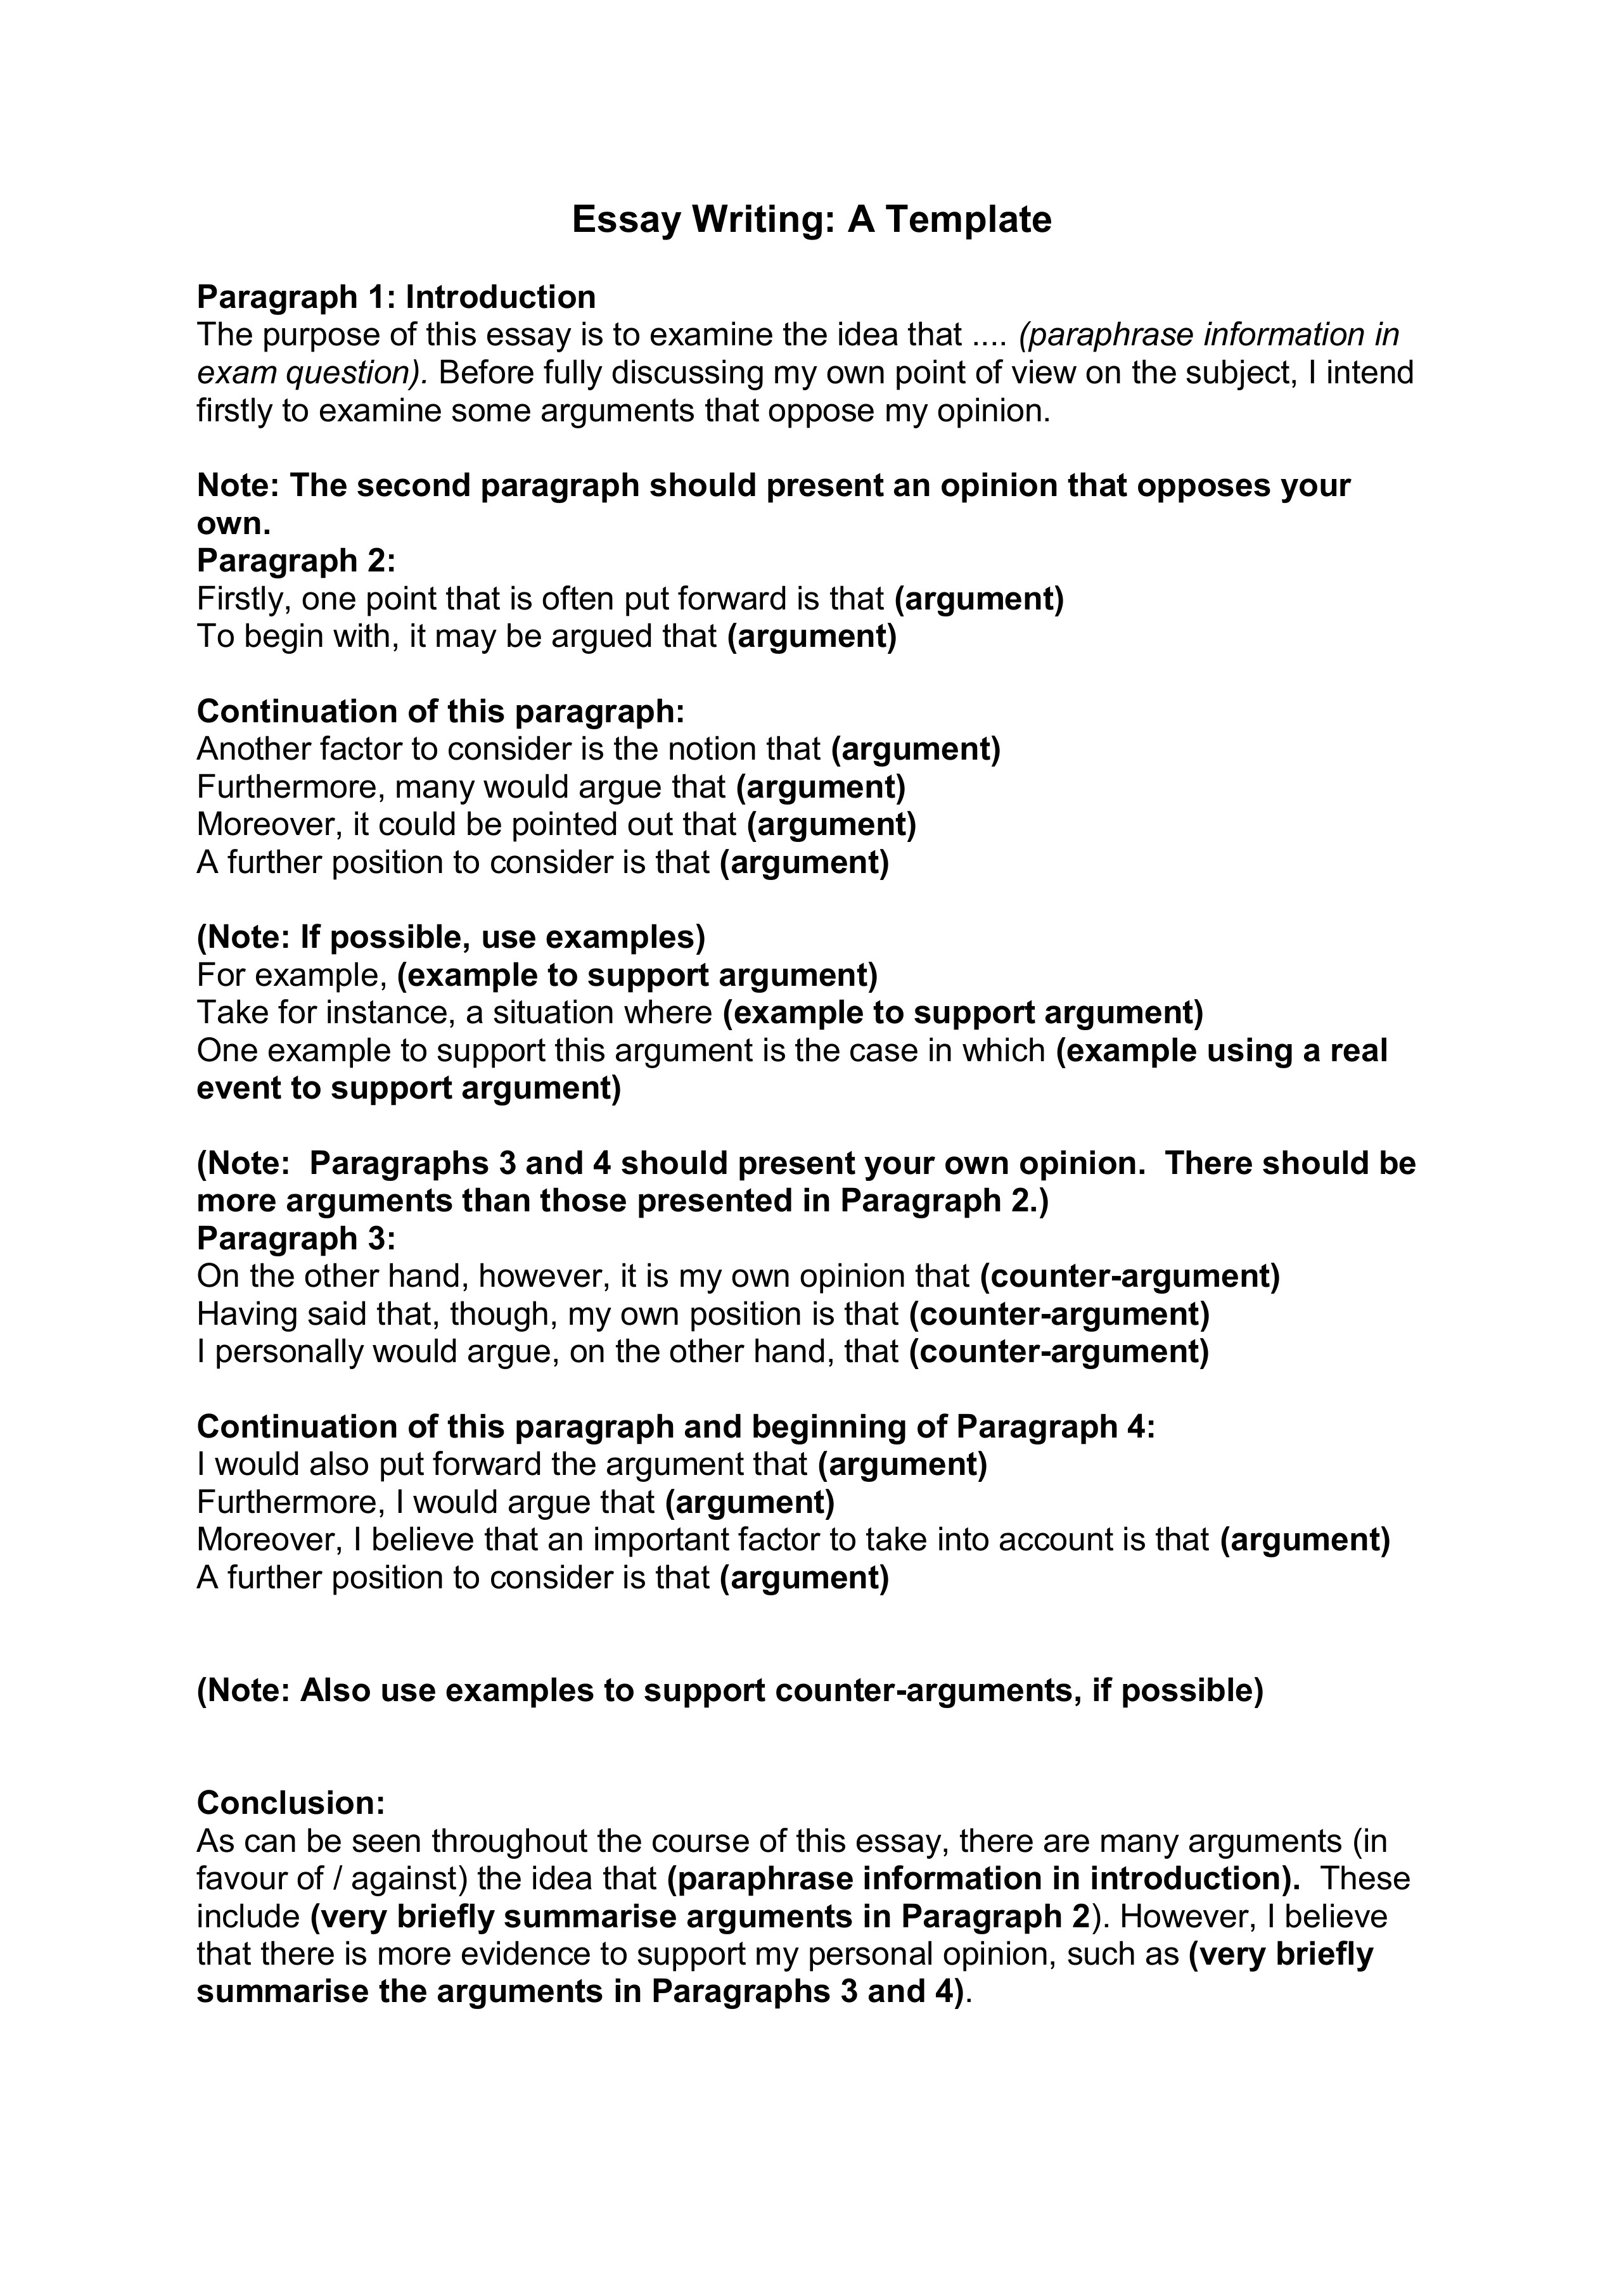 012 Opinion Essay Writing Template For Part How To Write An Magnificent Prompts 6th Grade Examples 3rd Full